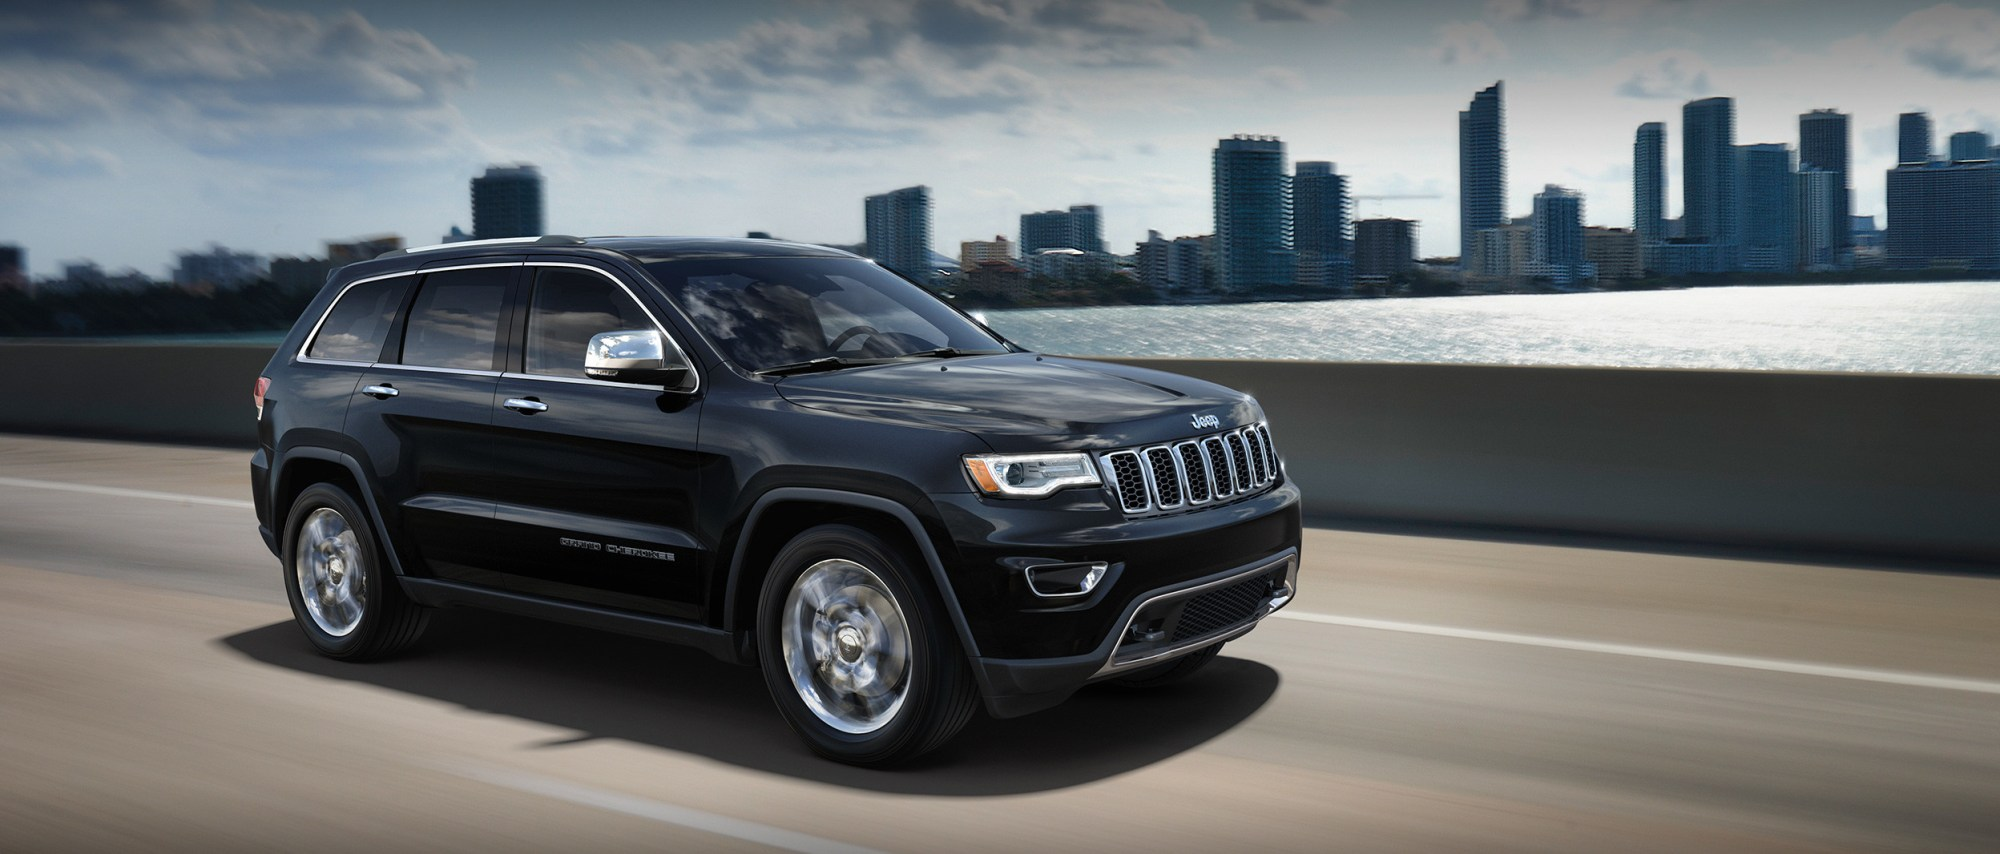 hight resolution of  black 2019 jeep grand cherokee speeding through the roads in front of a city skyline